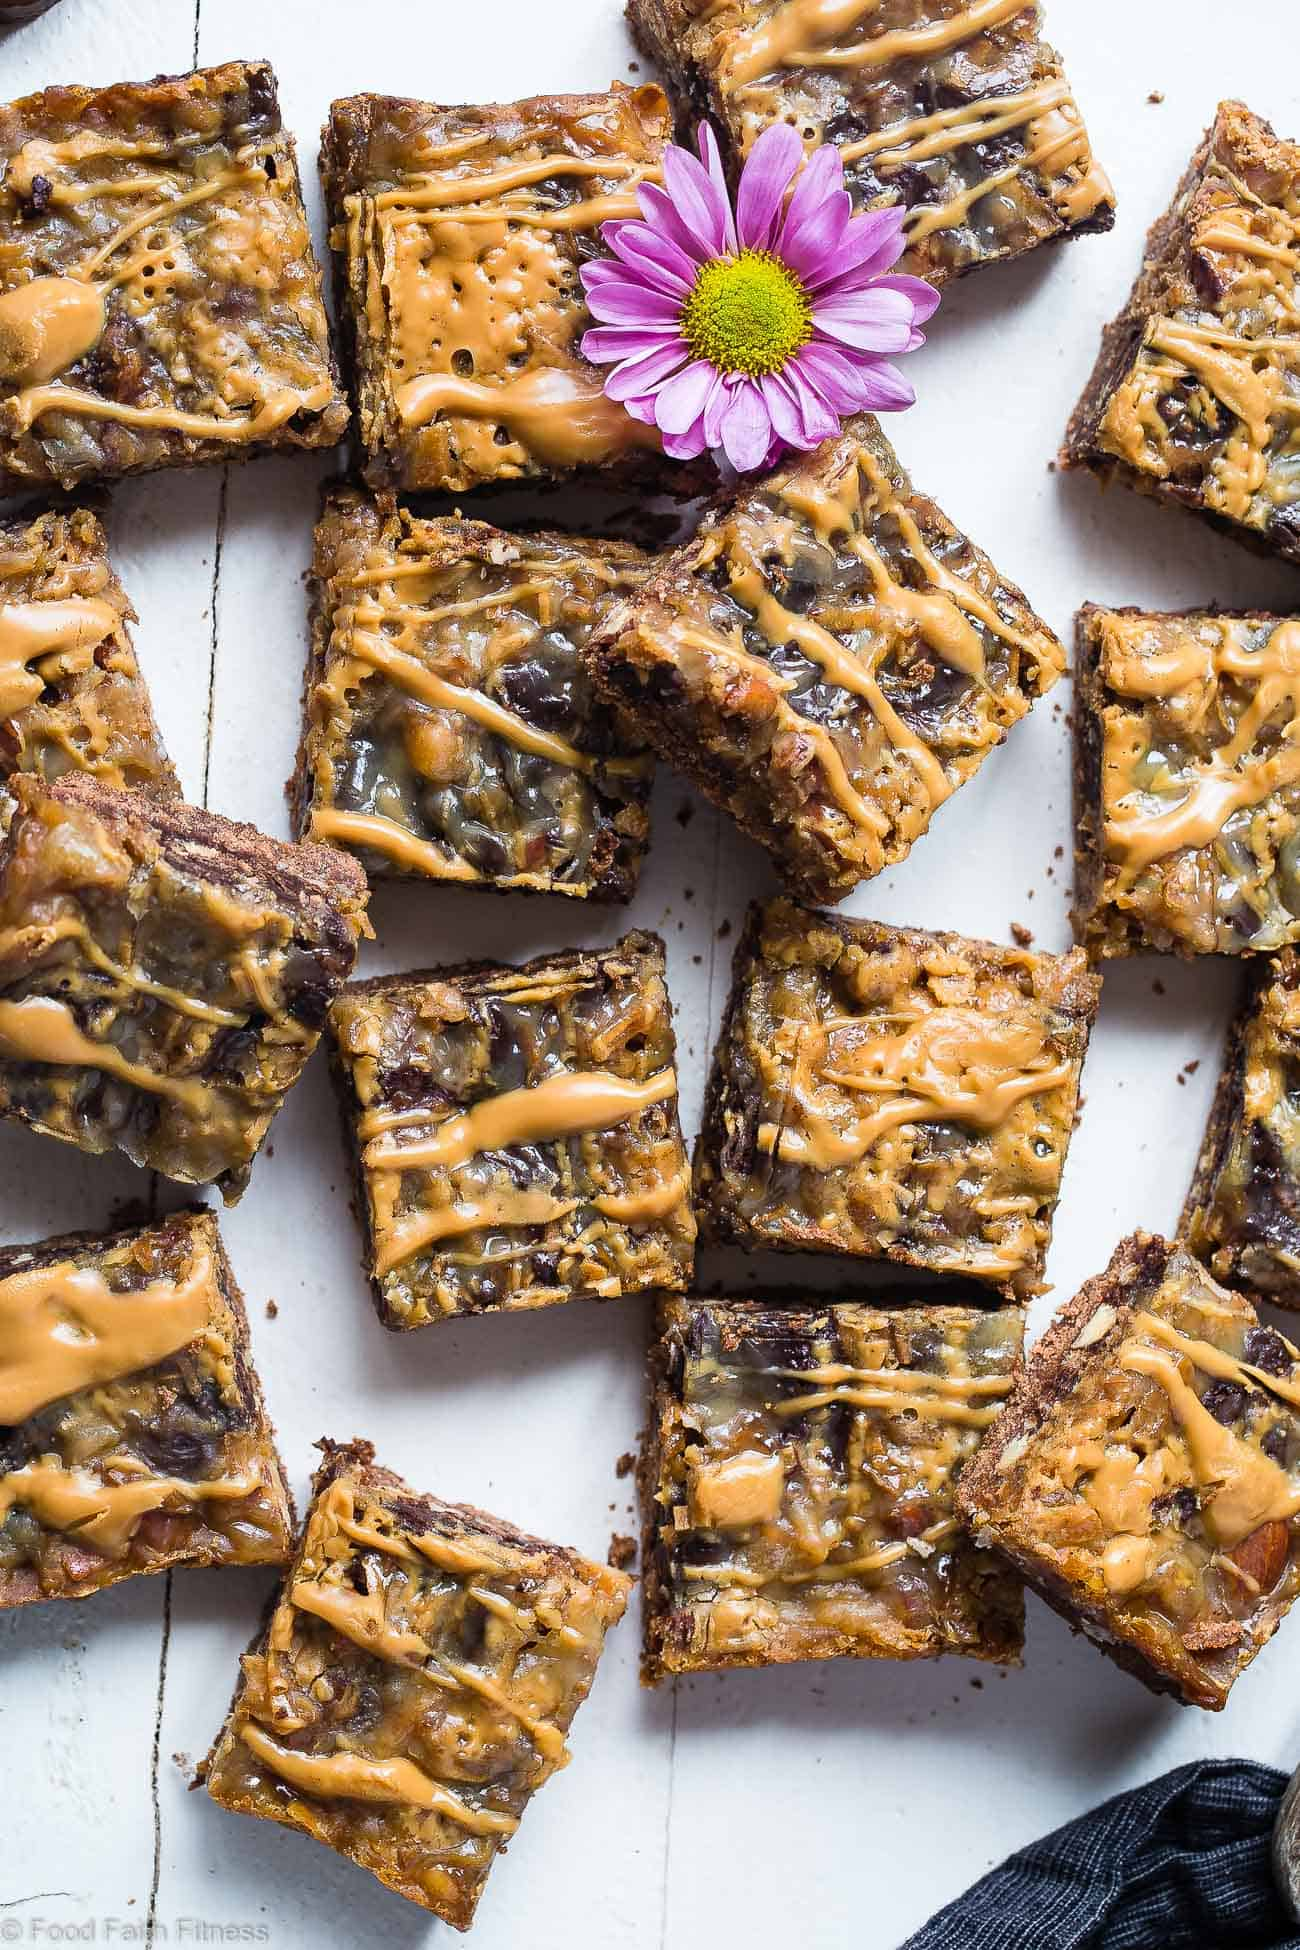 Almond Joy Gluten Free Magic Cookie Bars - These paleo and vegan friendly recipe for magic cookie bars taste like an almond joy! They're an easy, healthier spin on a classic treat that you'll never believe is gluten/grain/dairy and refined sugar free! | Foodfaithfitness.com | @FoodFaithFit